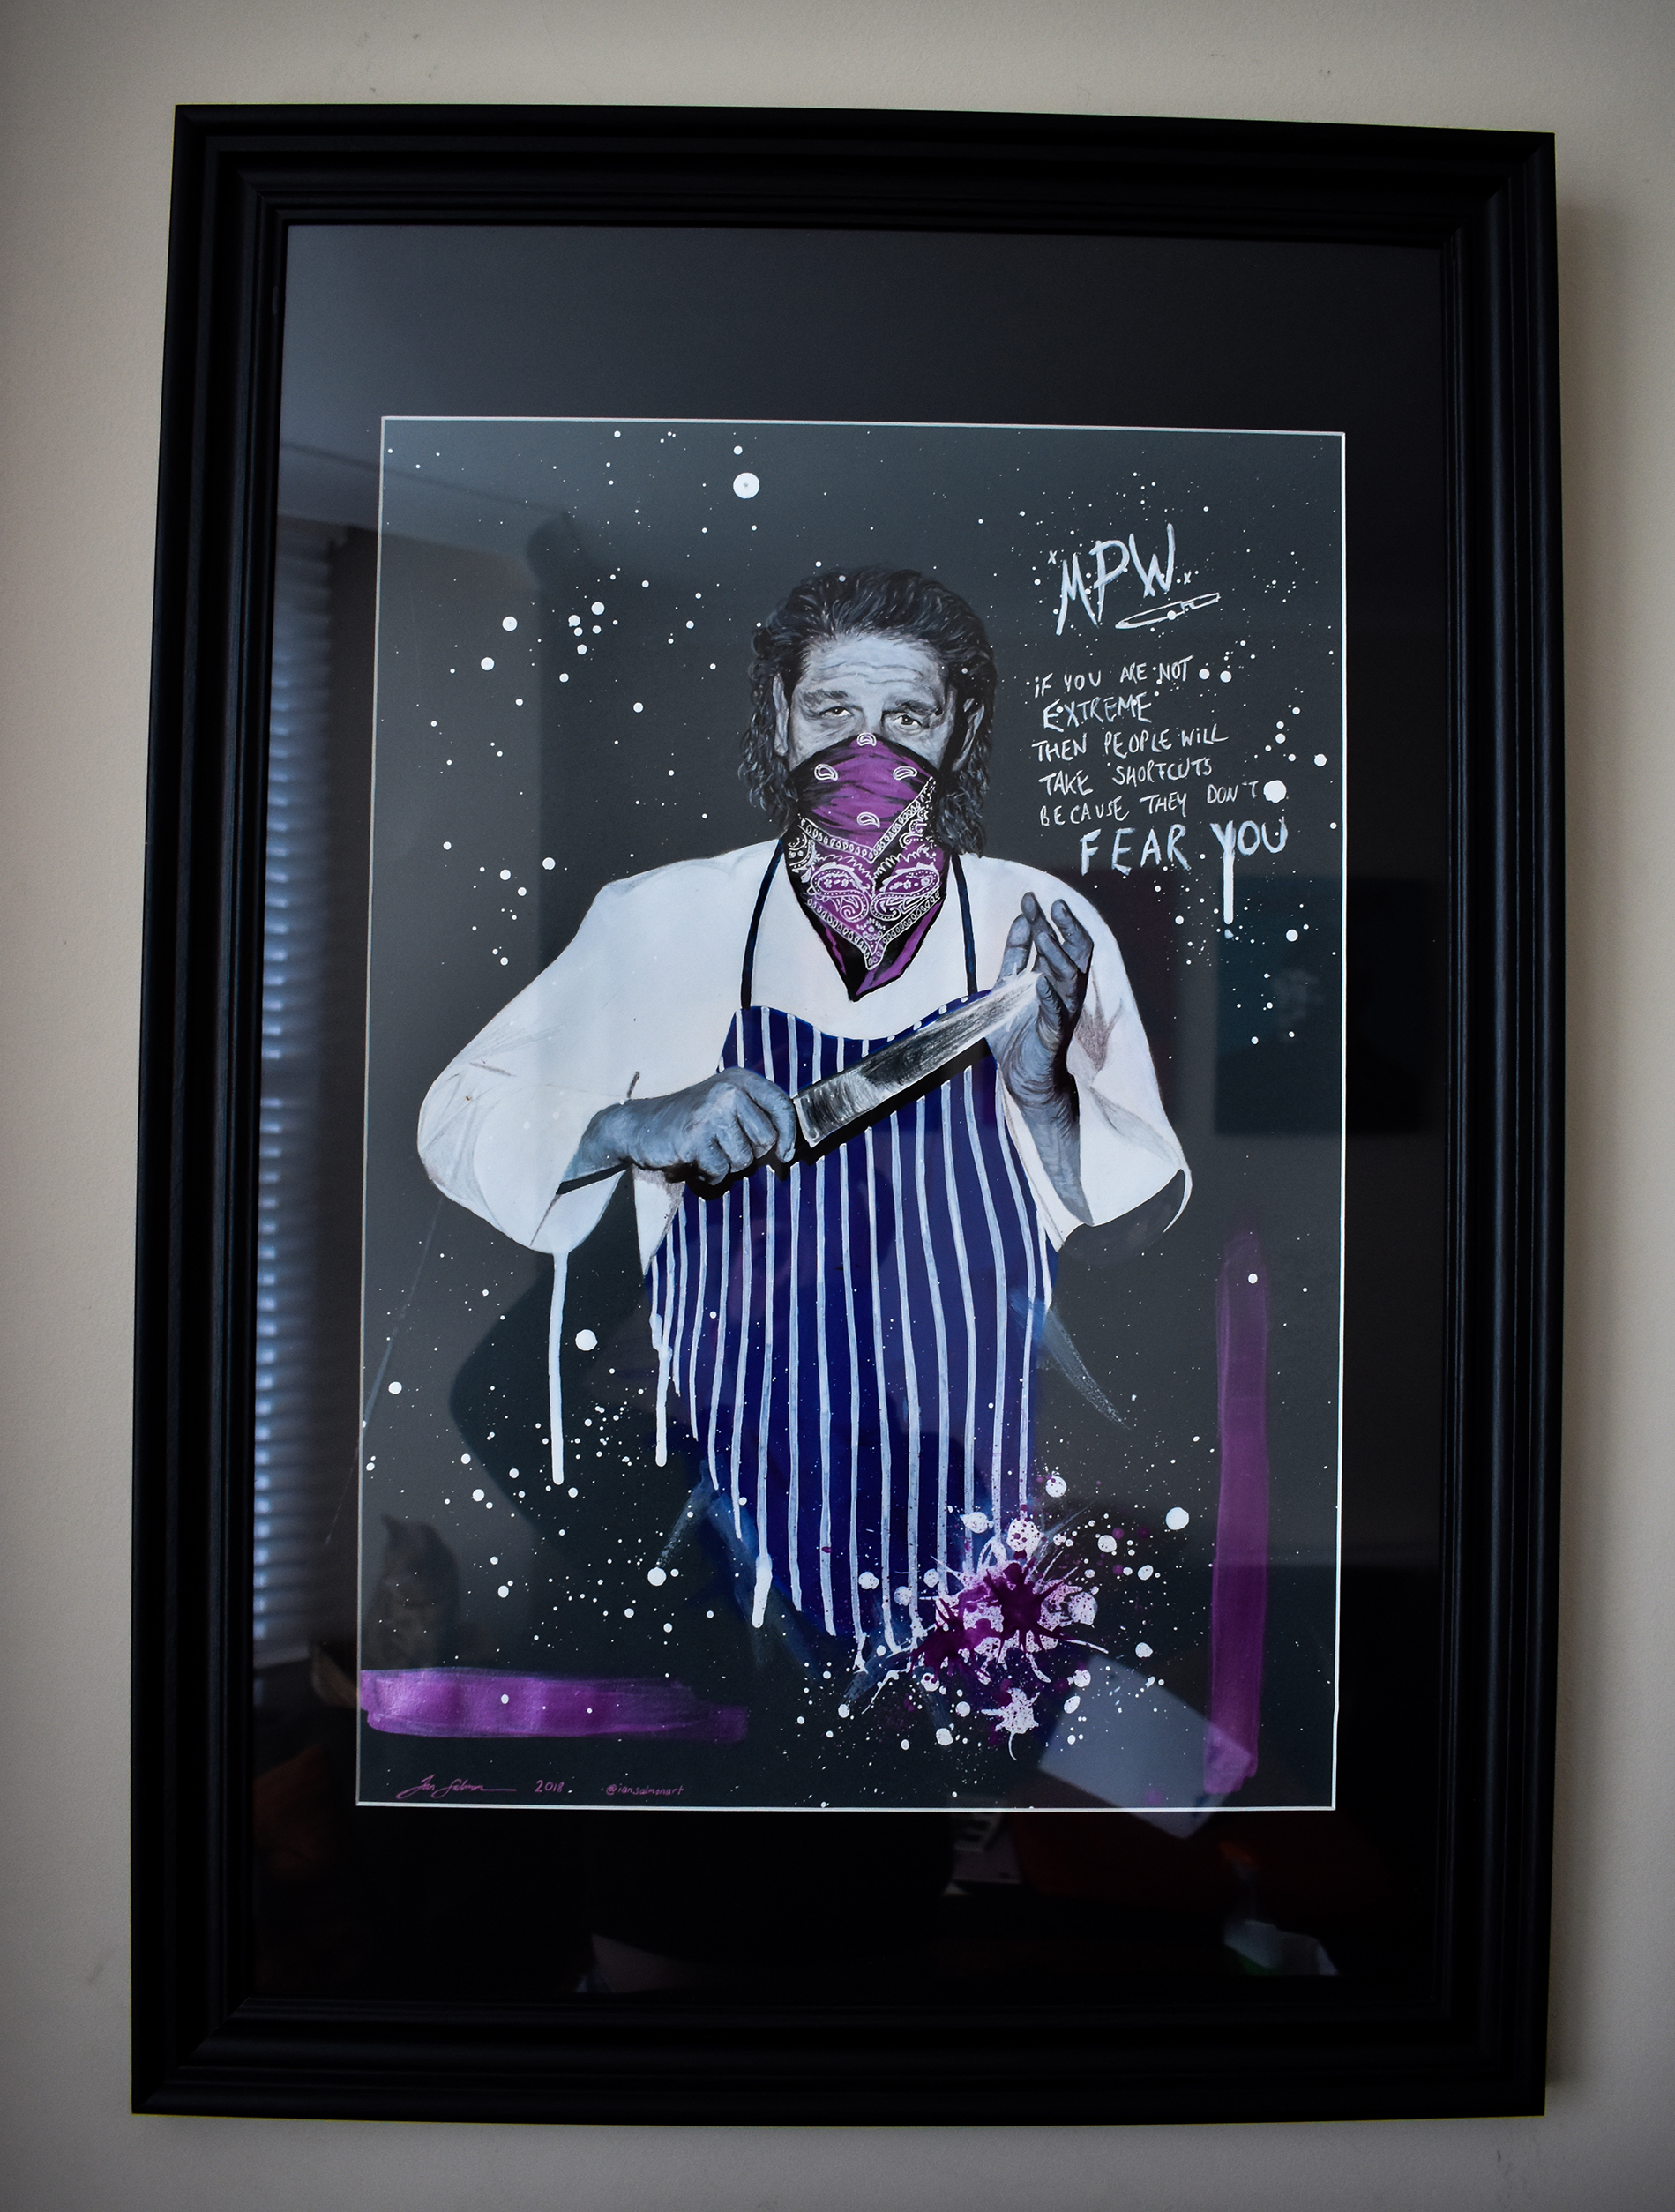 Marco Pierre White pop art portrait 8 framed.jpg